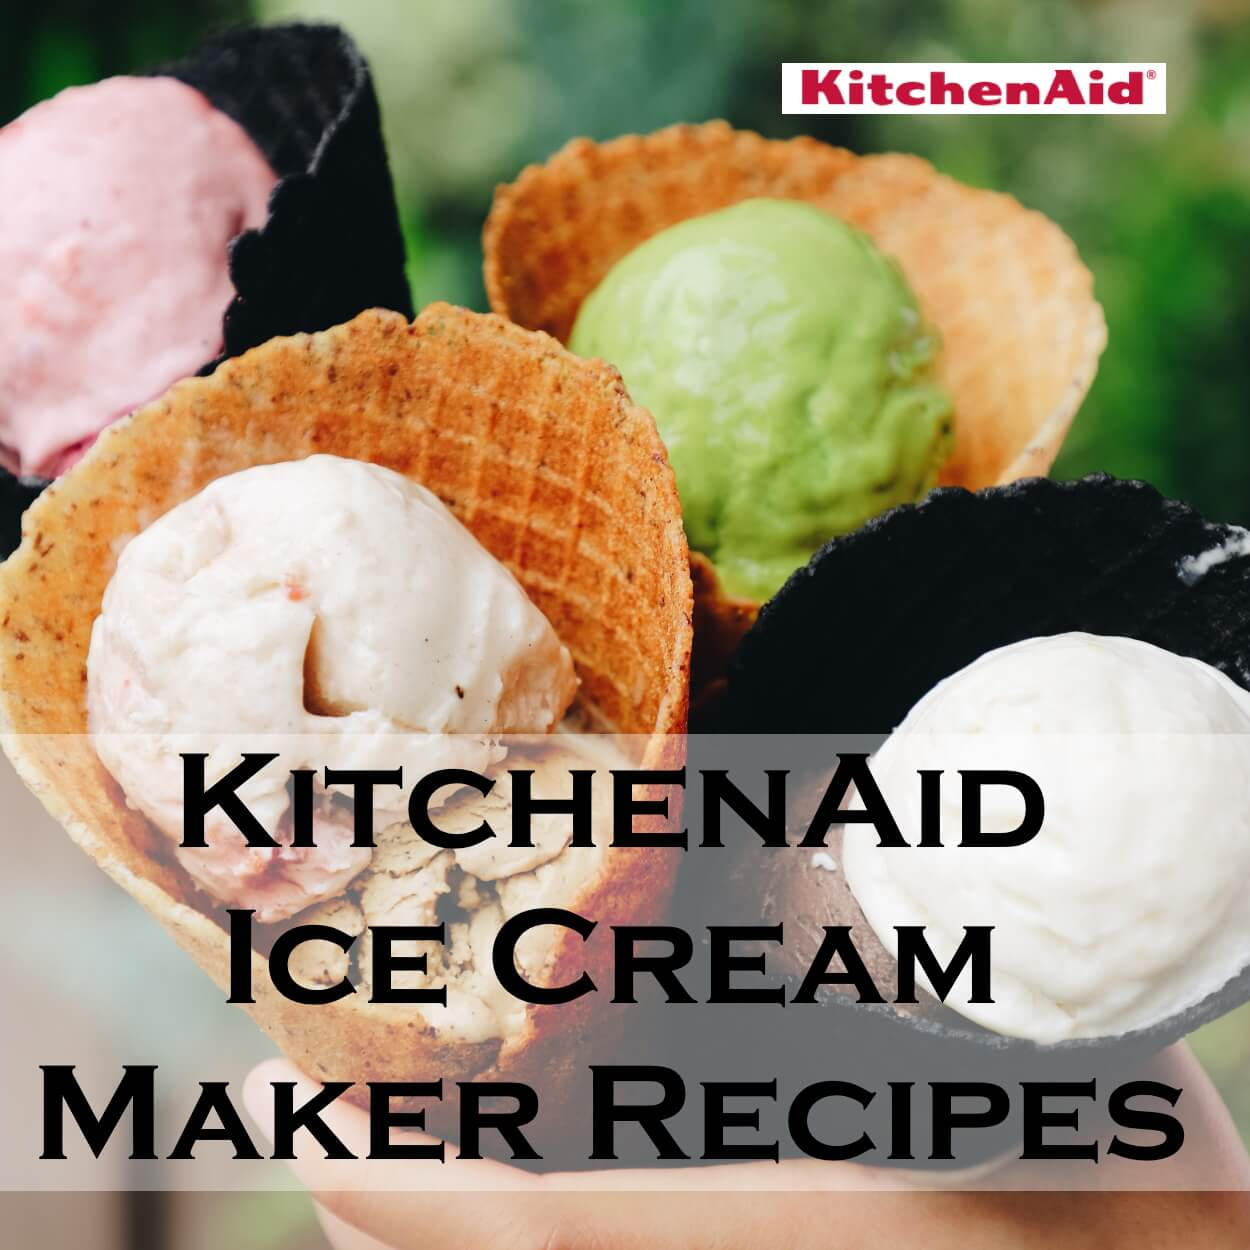 Kitchenaid Ice Cream Maker Recipes Perfect For Your Kitchen Aid Attachment